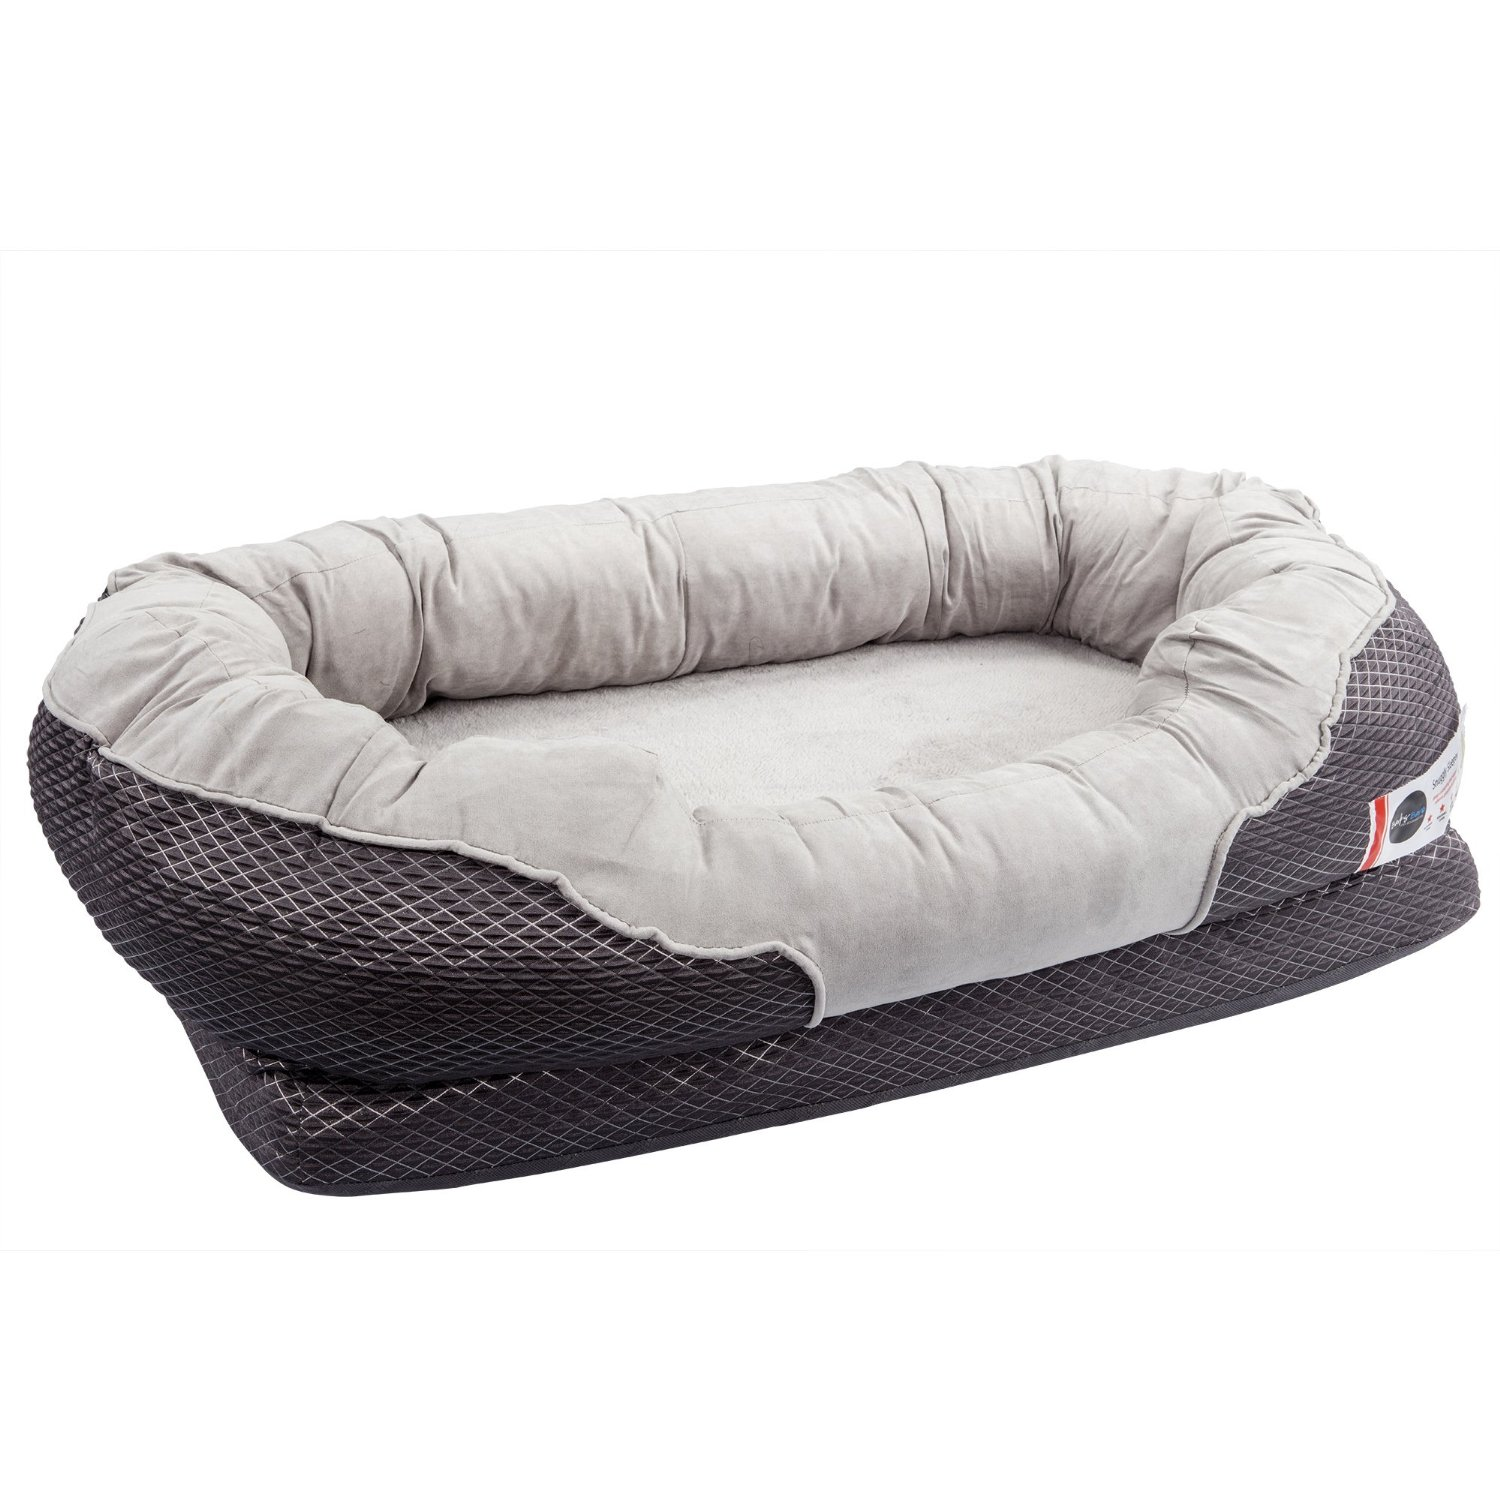 bed h fleece cover replacement included soft dog products beds com dp heating amazon supplies x lectro pet k pad large heated not